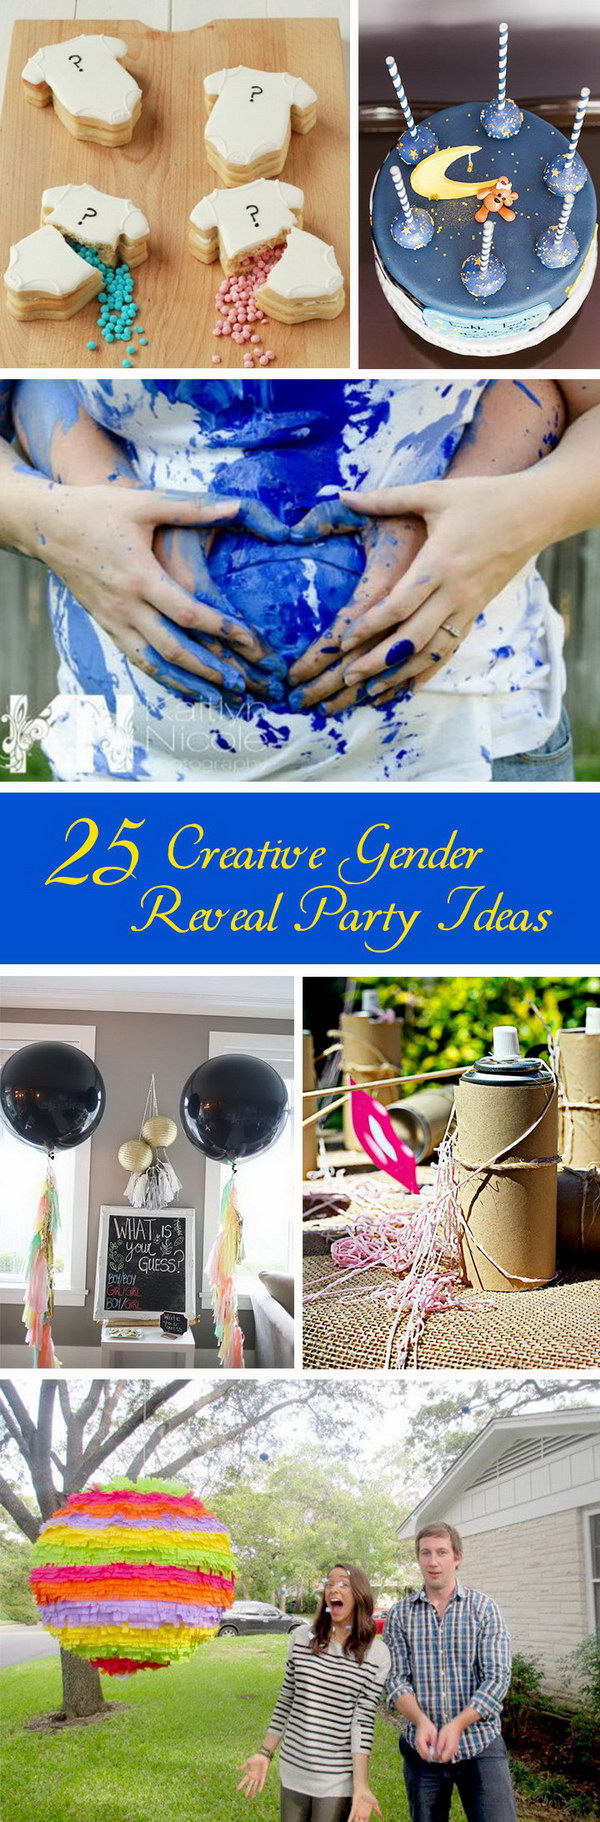 Creative Gender Reveal Party Ideas!